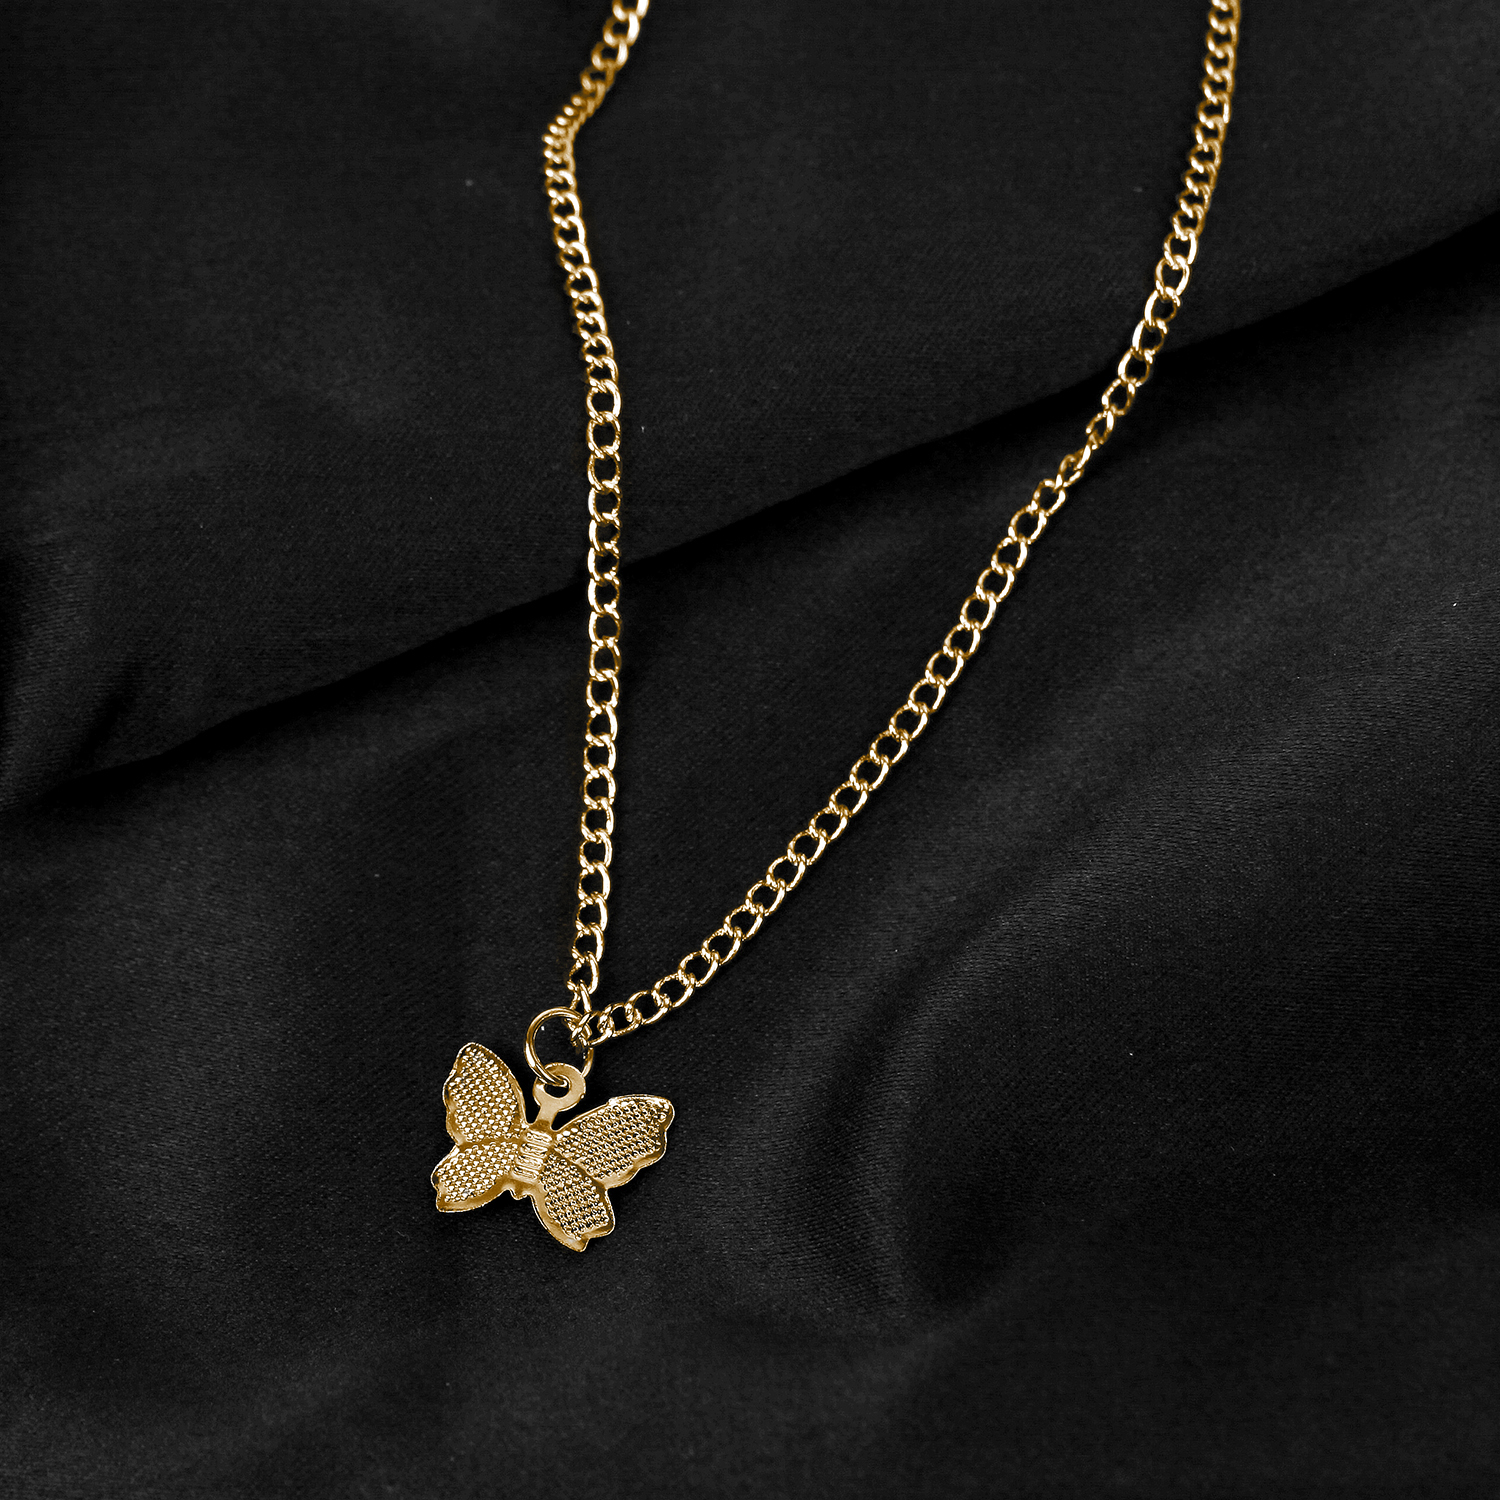 Gold Chain Butterfly Pendant Choker Necklace Women Statement Collares Bohemian Beach Jewelry Gift Collier Cheap - necklace-pendant